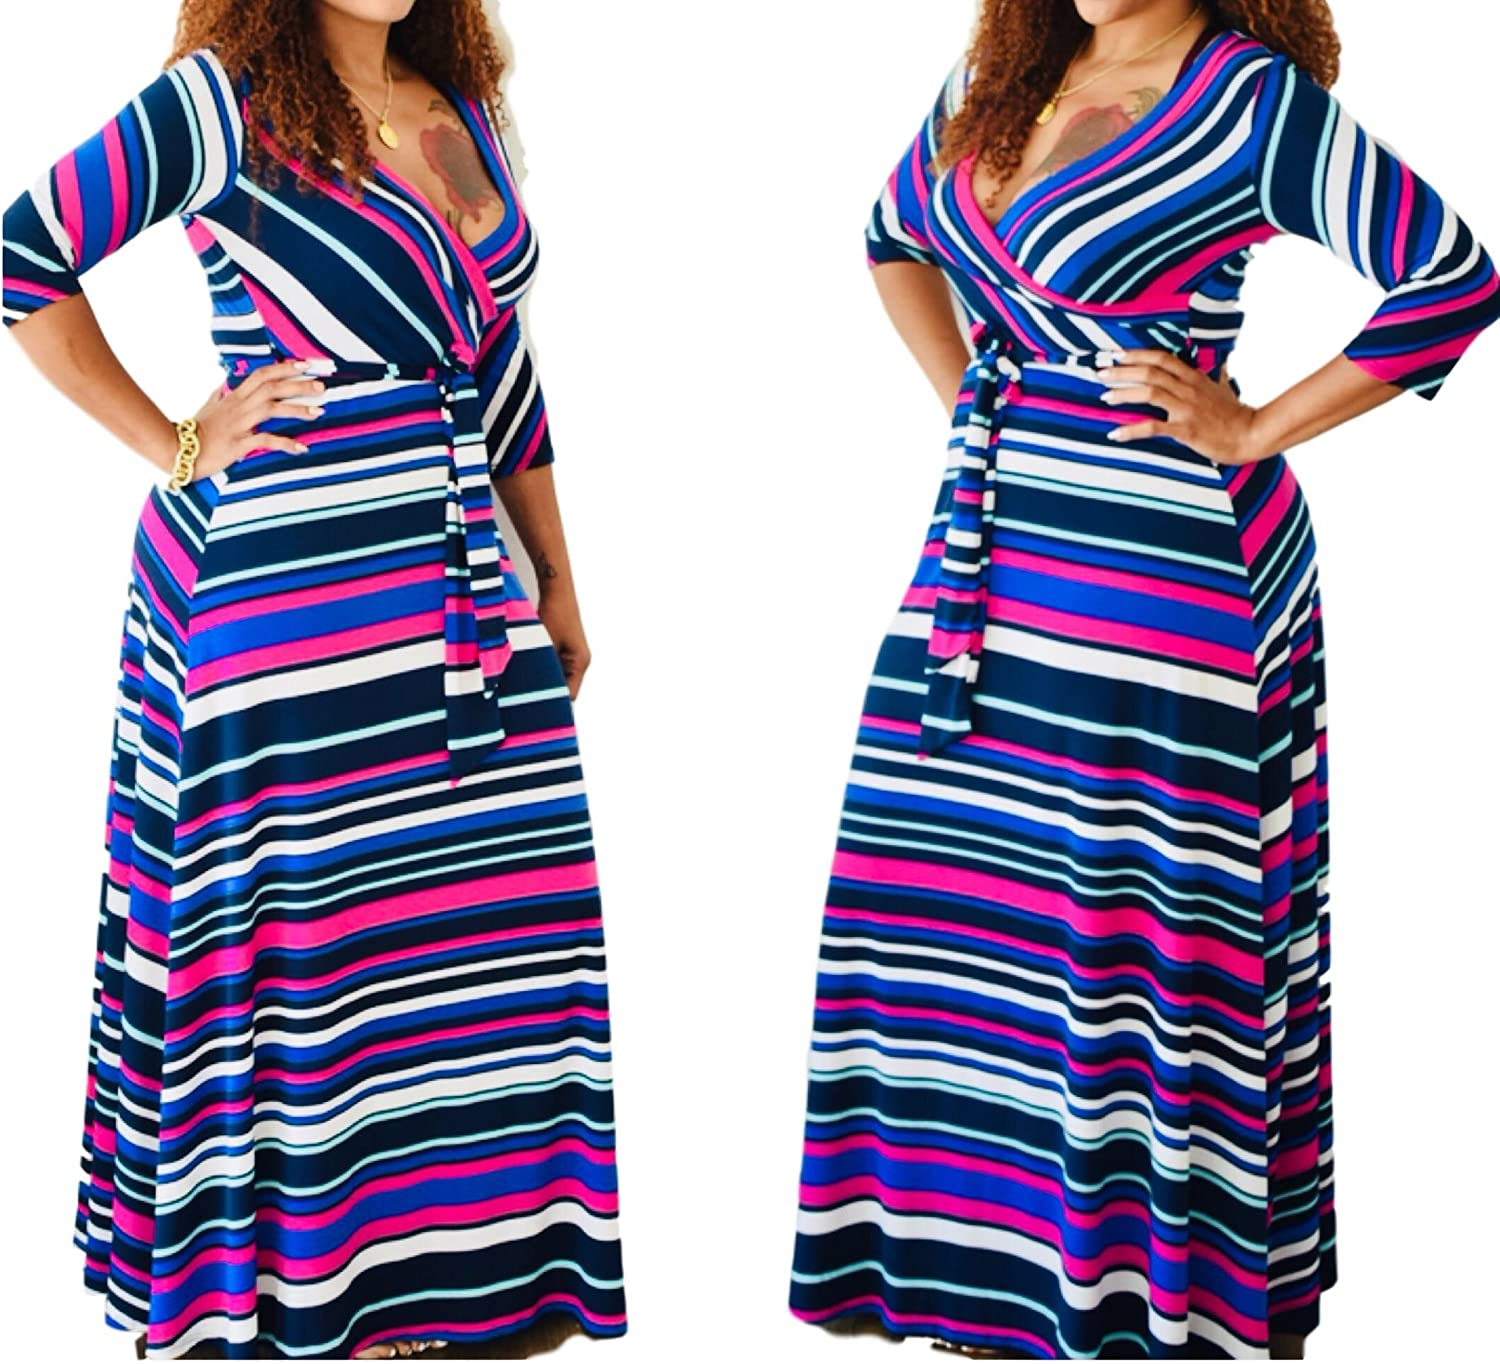 Fabulously Dressed New Vibrant Striped Belted Faux Wrap Maxi Dress Size Small